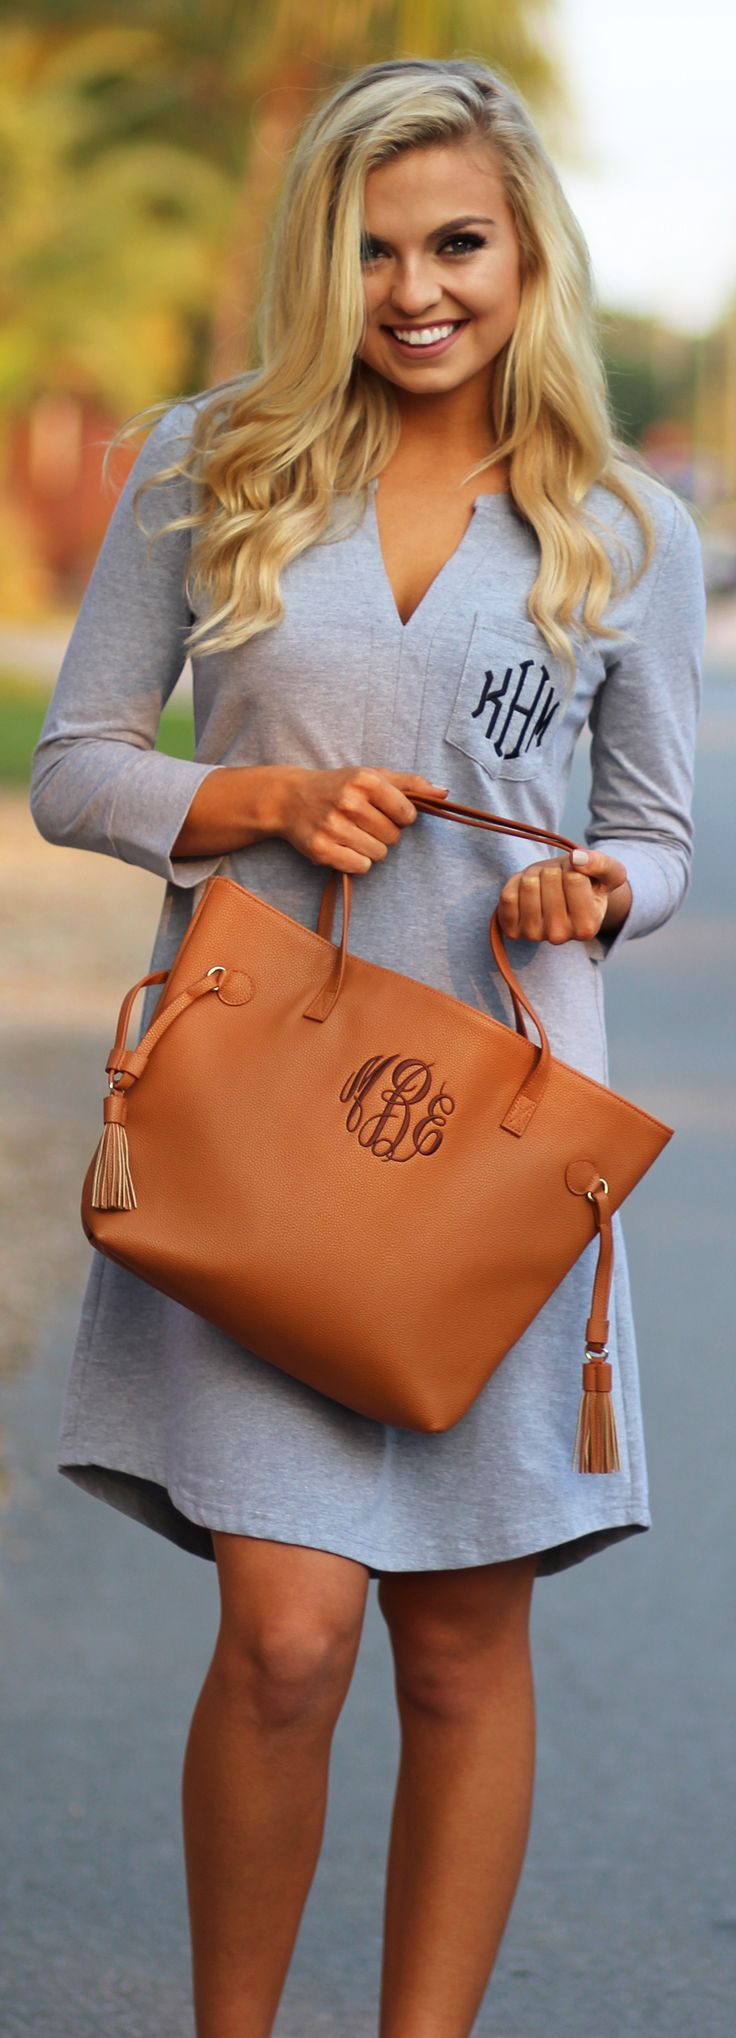 In LOVE with how simple & sweet this Monogrammed Dress looks with this Monogrammed Purse #perferctpair #casualoutfits